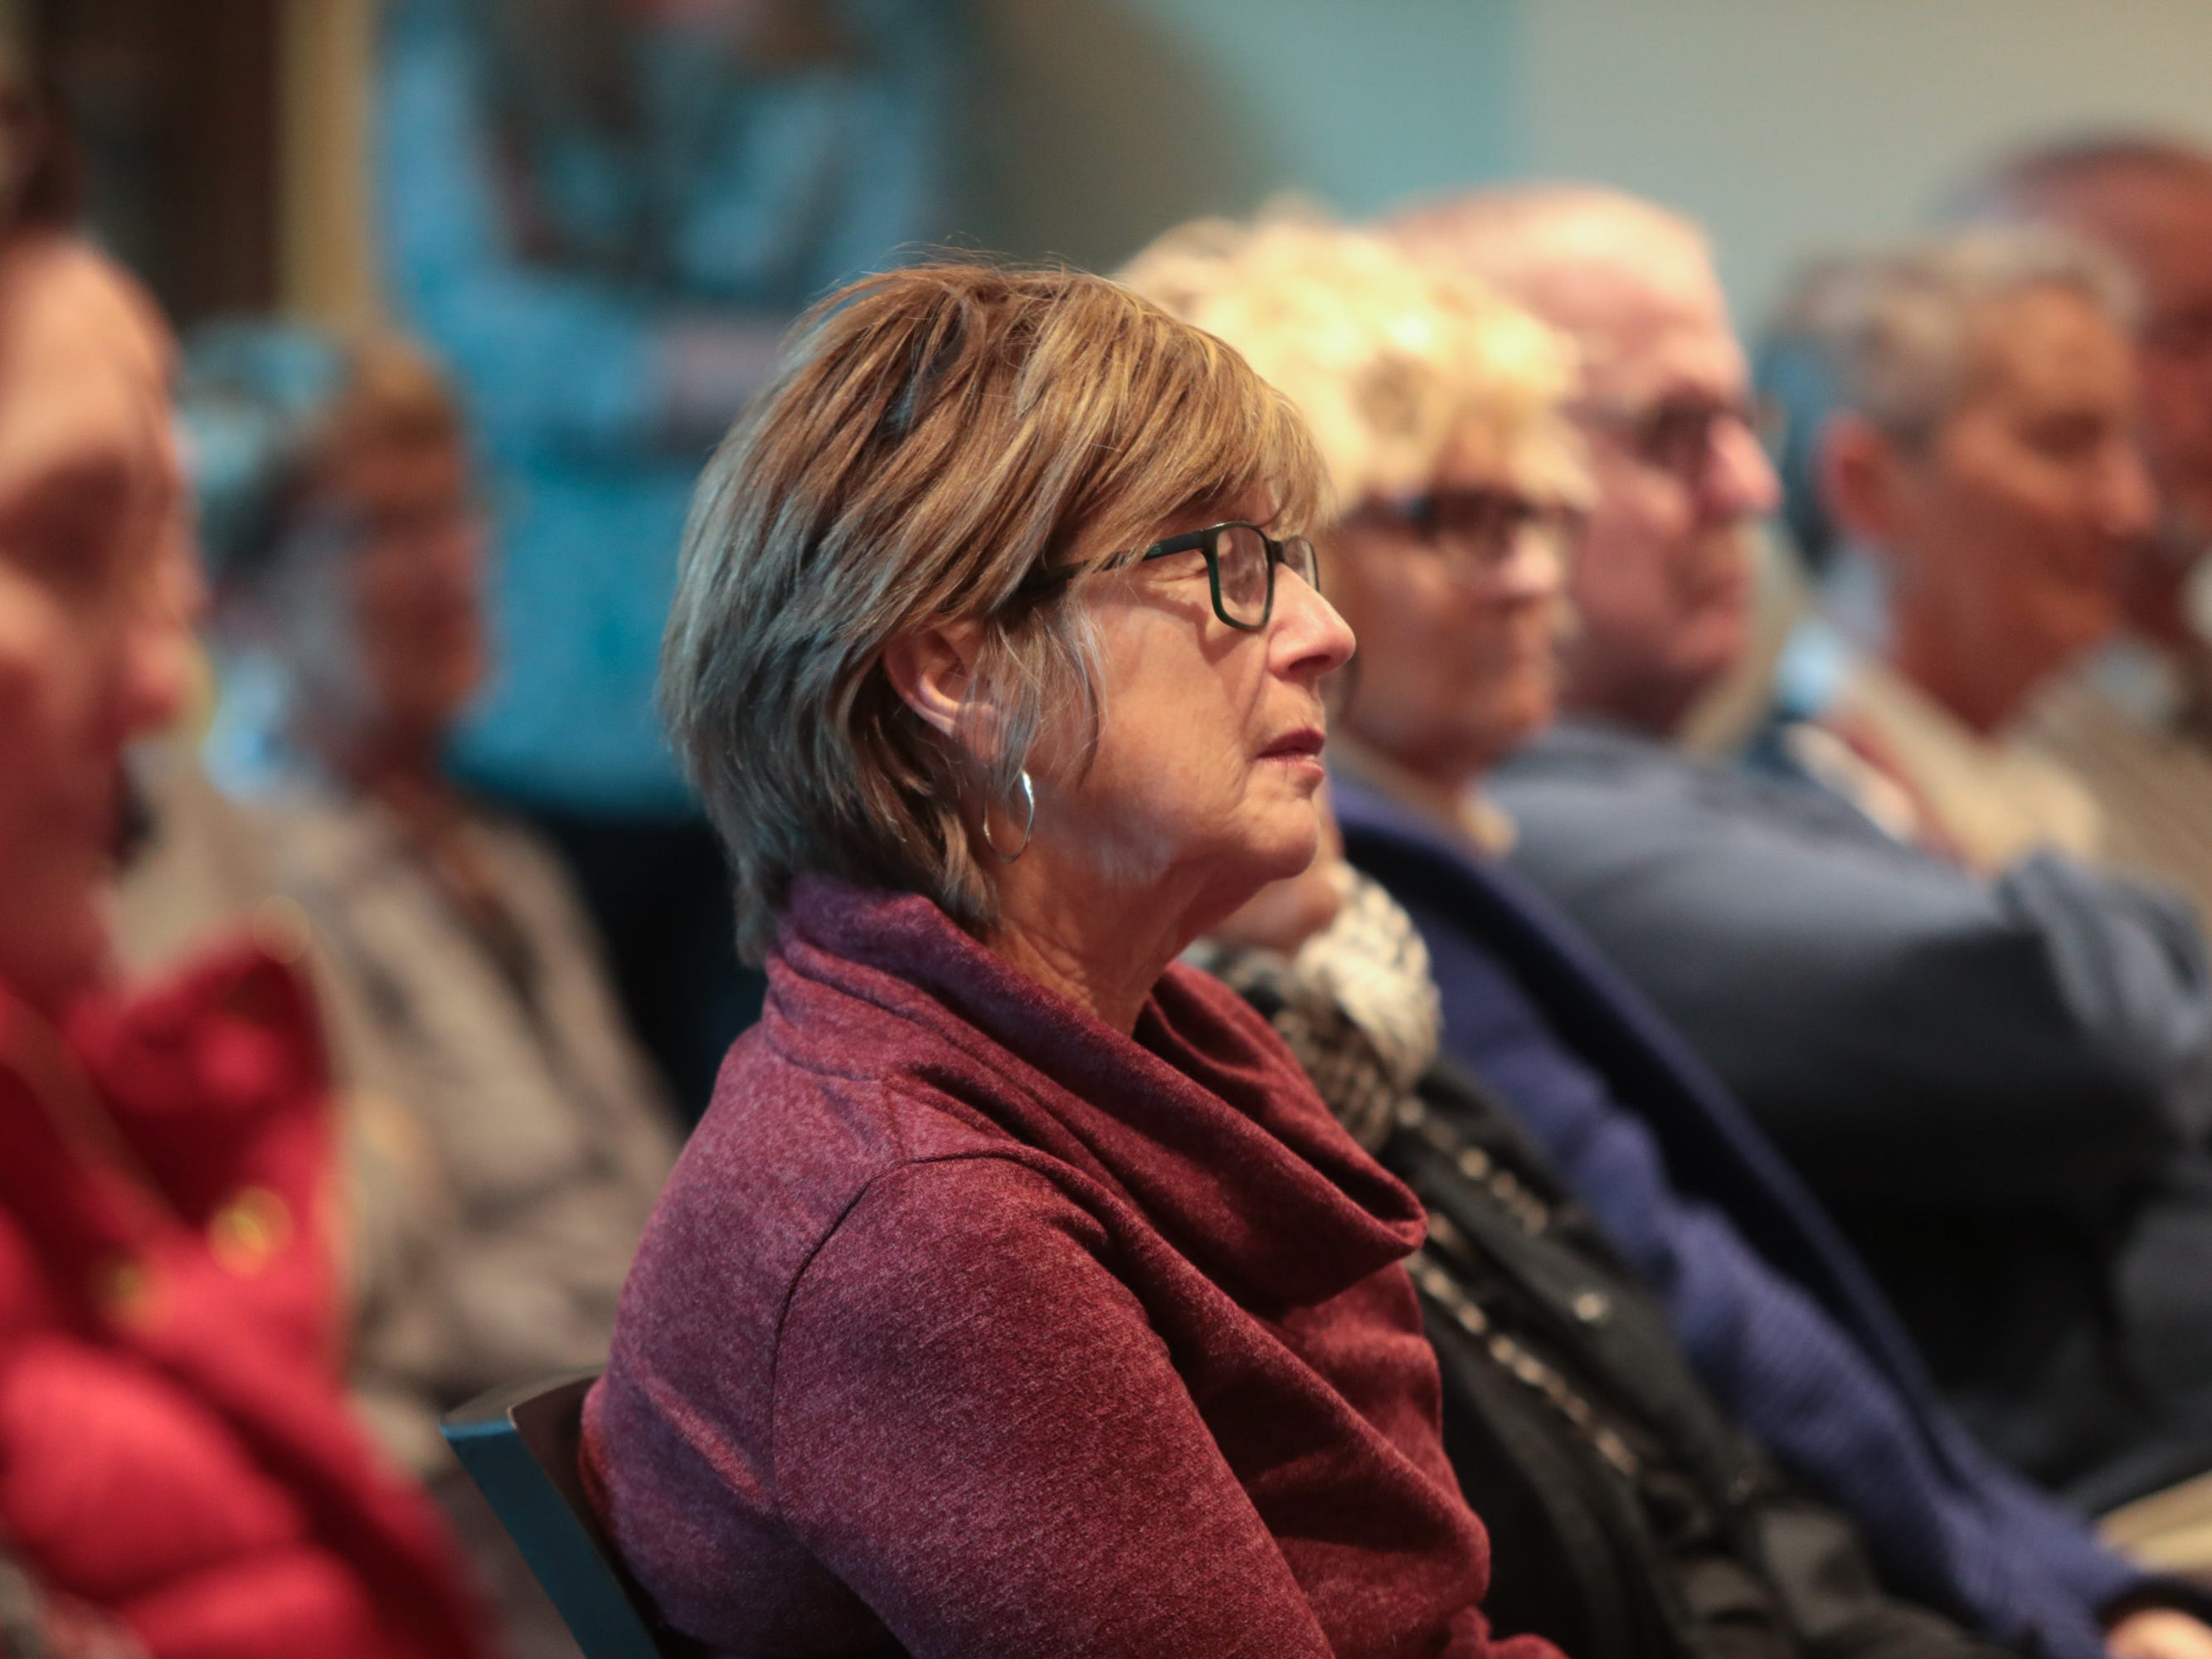 """Community members listen to stories about """"searching"""" at the Coachella Valley Storytellers Project, La Quinta, Calif., March 21, 2019."""